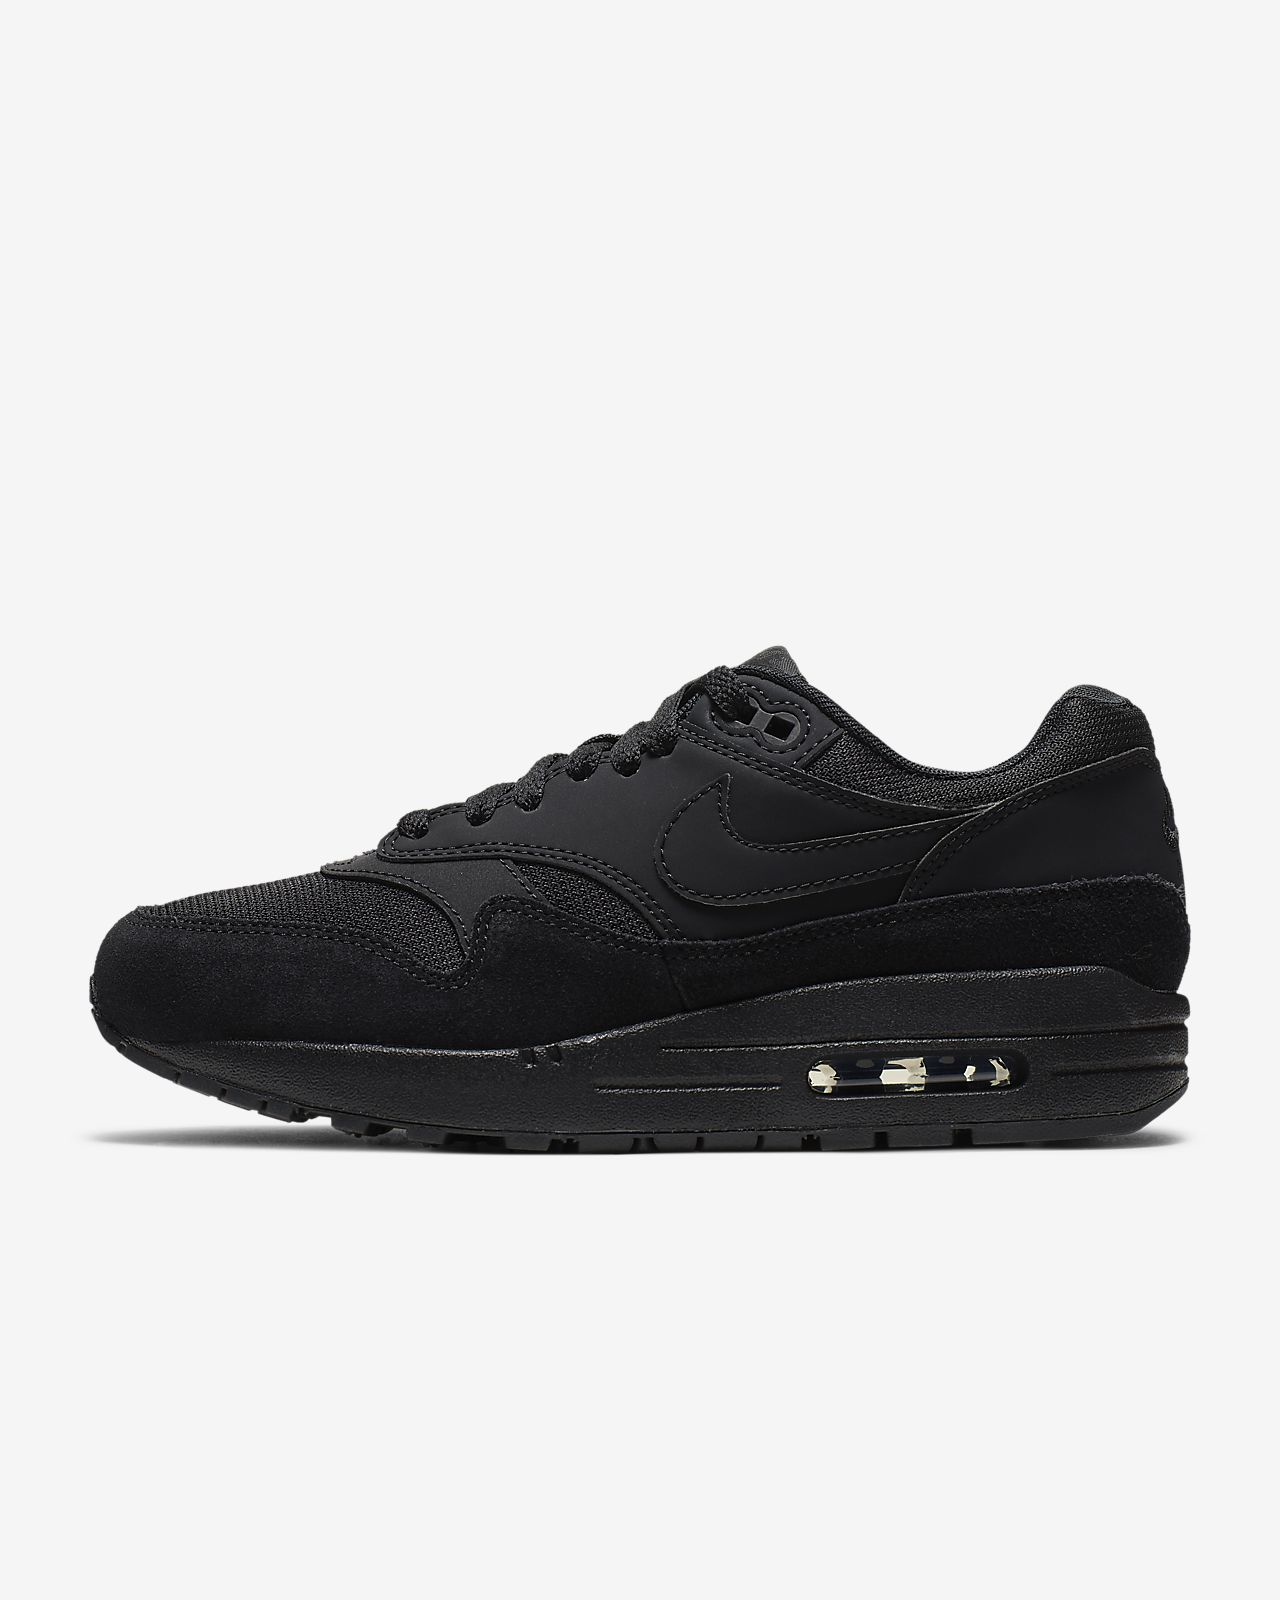 Nike Air Max 1 Leather Black White Grey